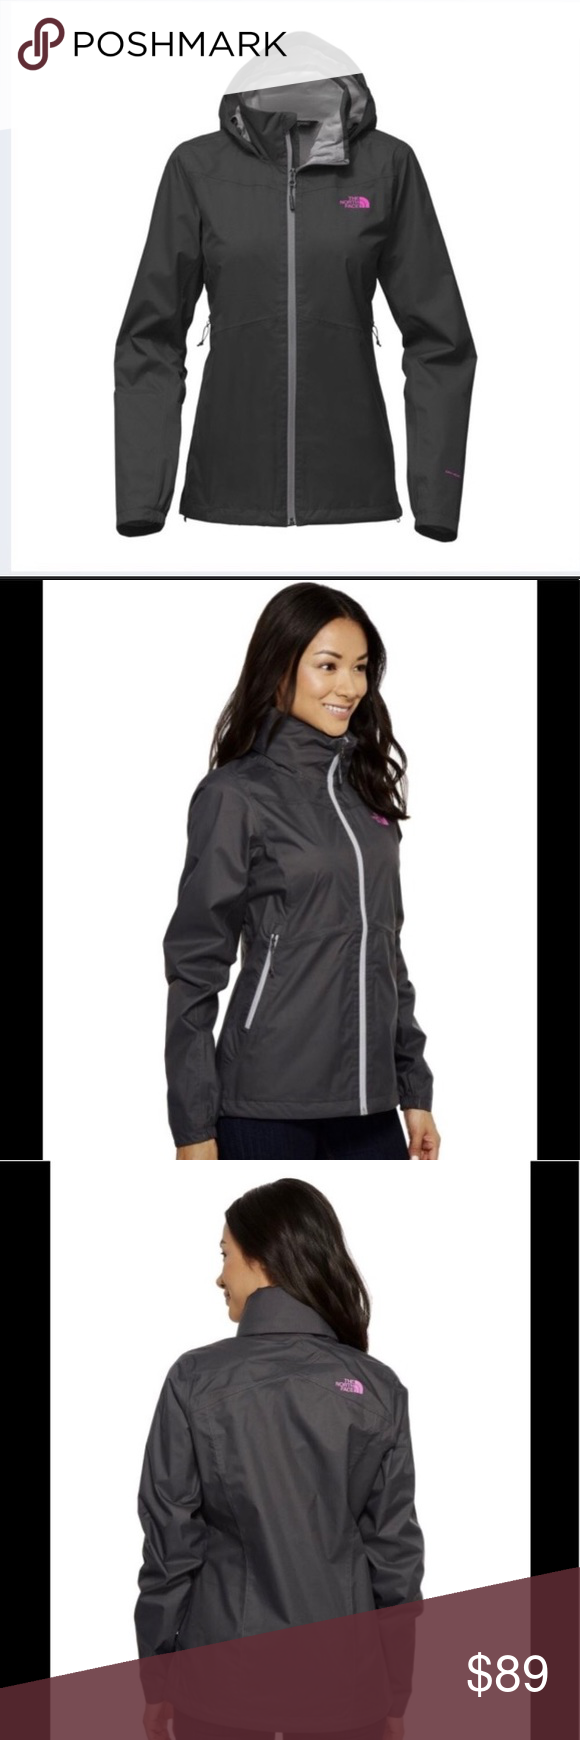 8b9932815 The North Face Resolve Plus Jacket TNF Resolve Plus Windbreaker ...